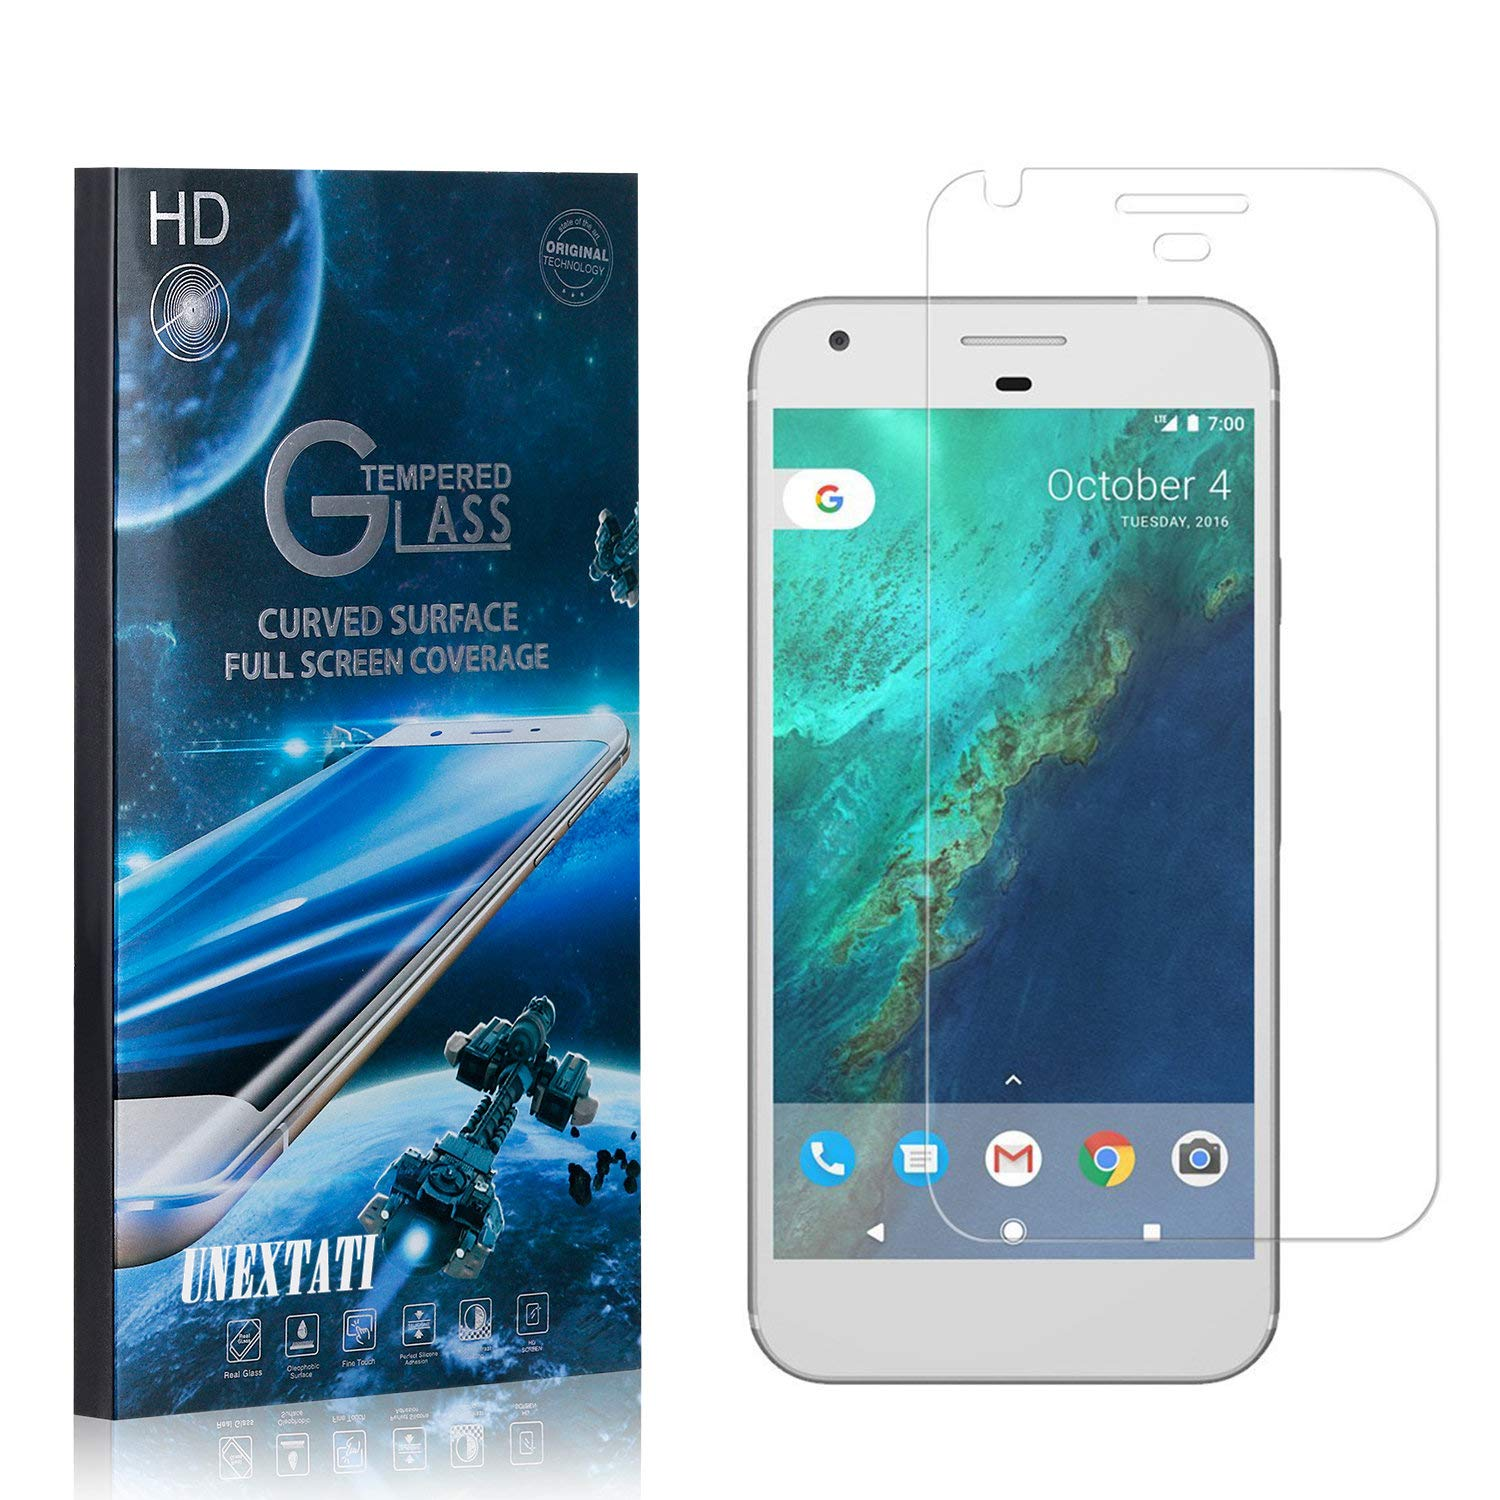 Tempered Glass Screen Protector Compatible with Google Pixel XL UNEXTATI Premium HD Anti Fingerprint Screen Protector Film for Google Pixel XL 4 Pack